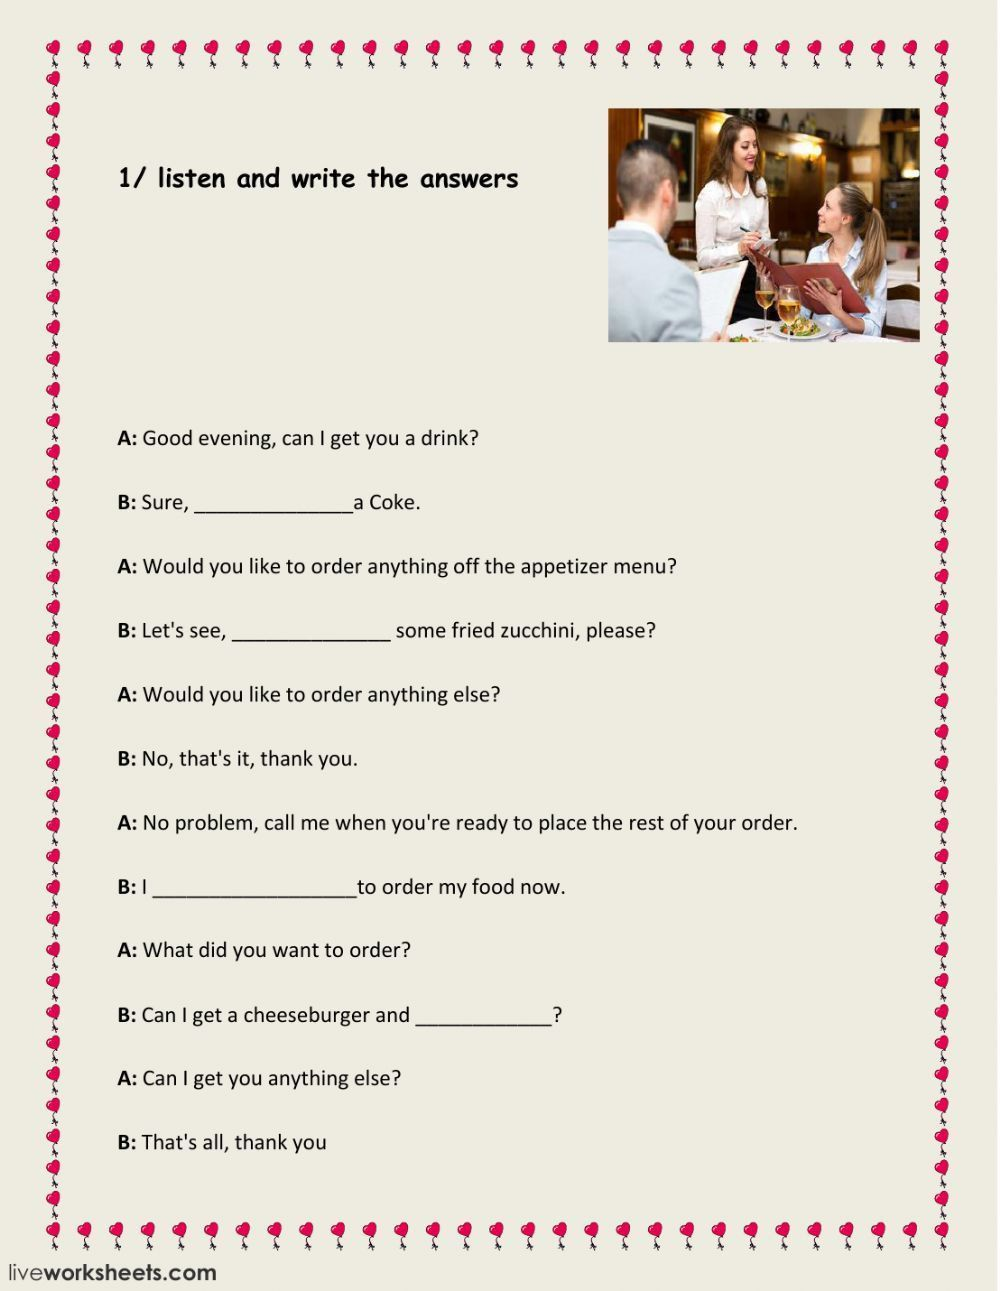 Dialogue Worksheet 5th Grade At The Restaurant Interactive And Able Worksheet In 2020 1st Grade Writing Worksheets Educational Worksheets Worksheets